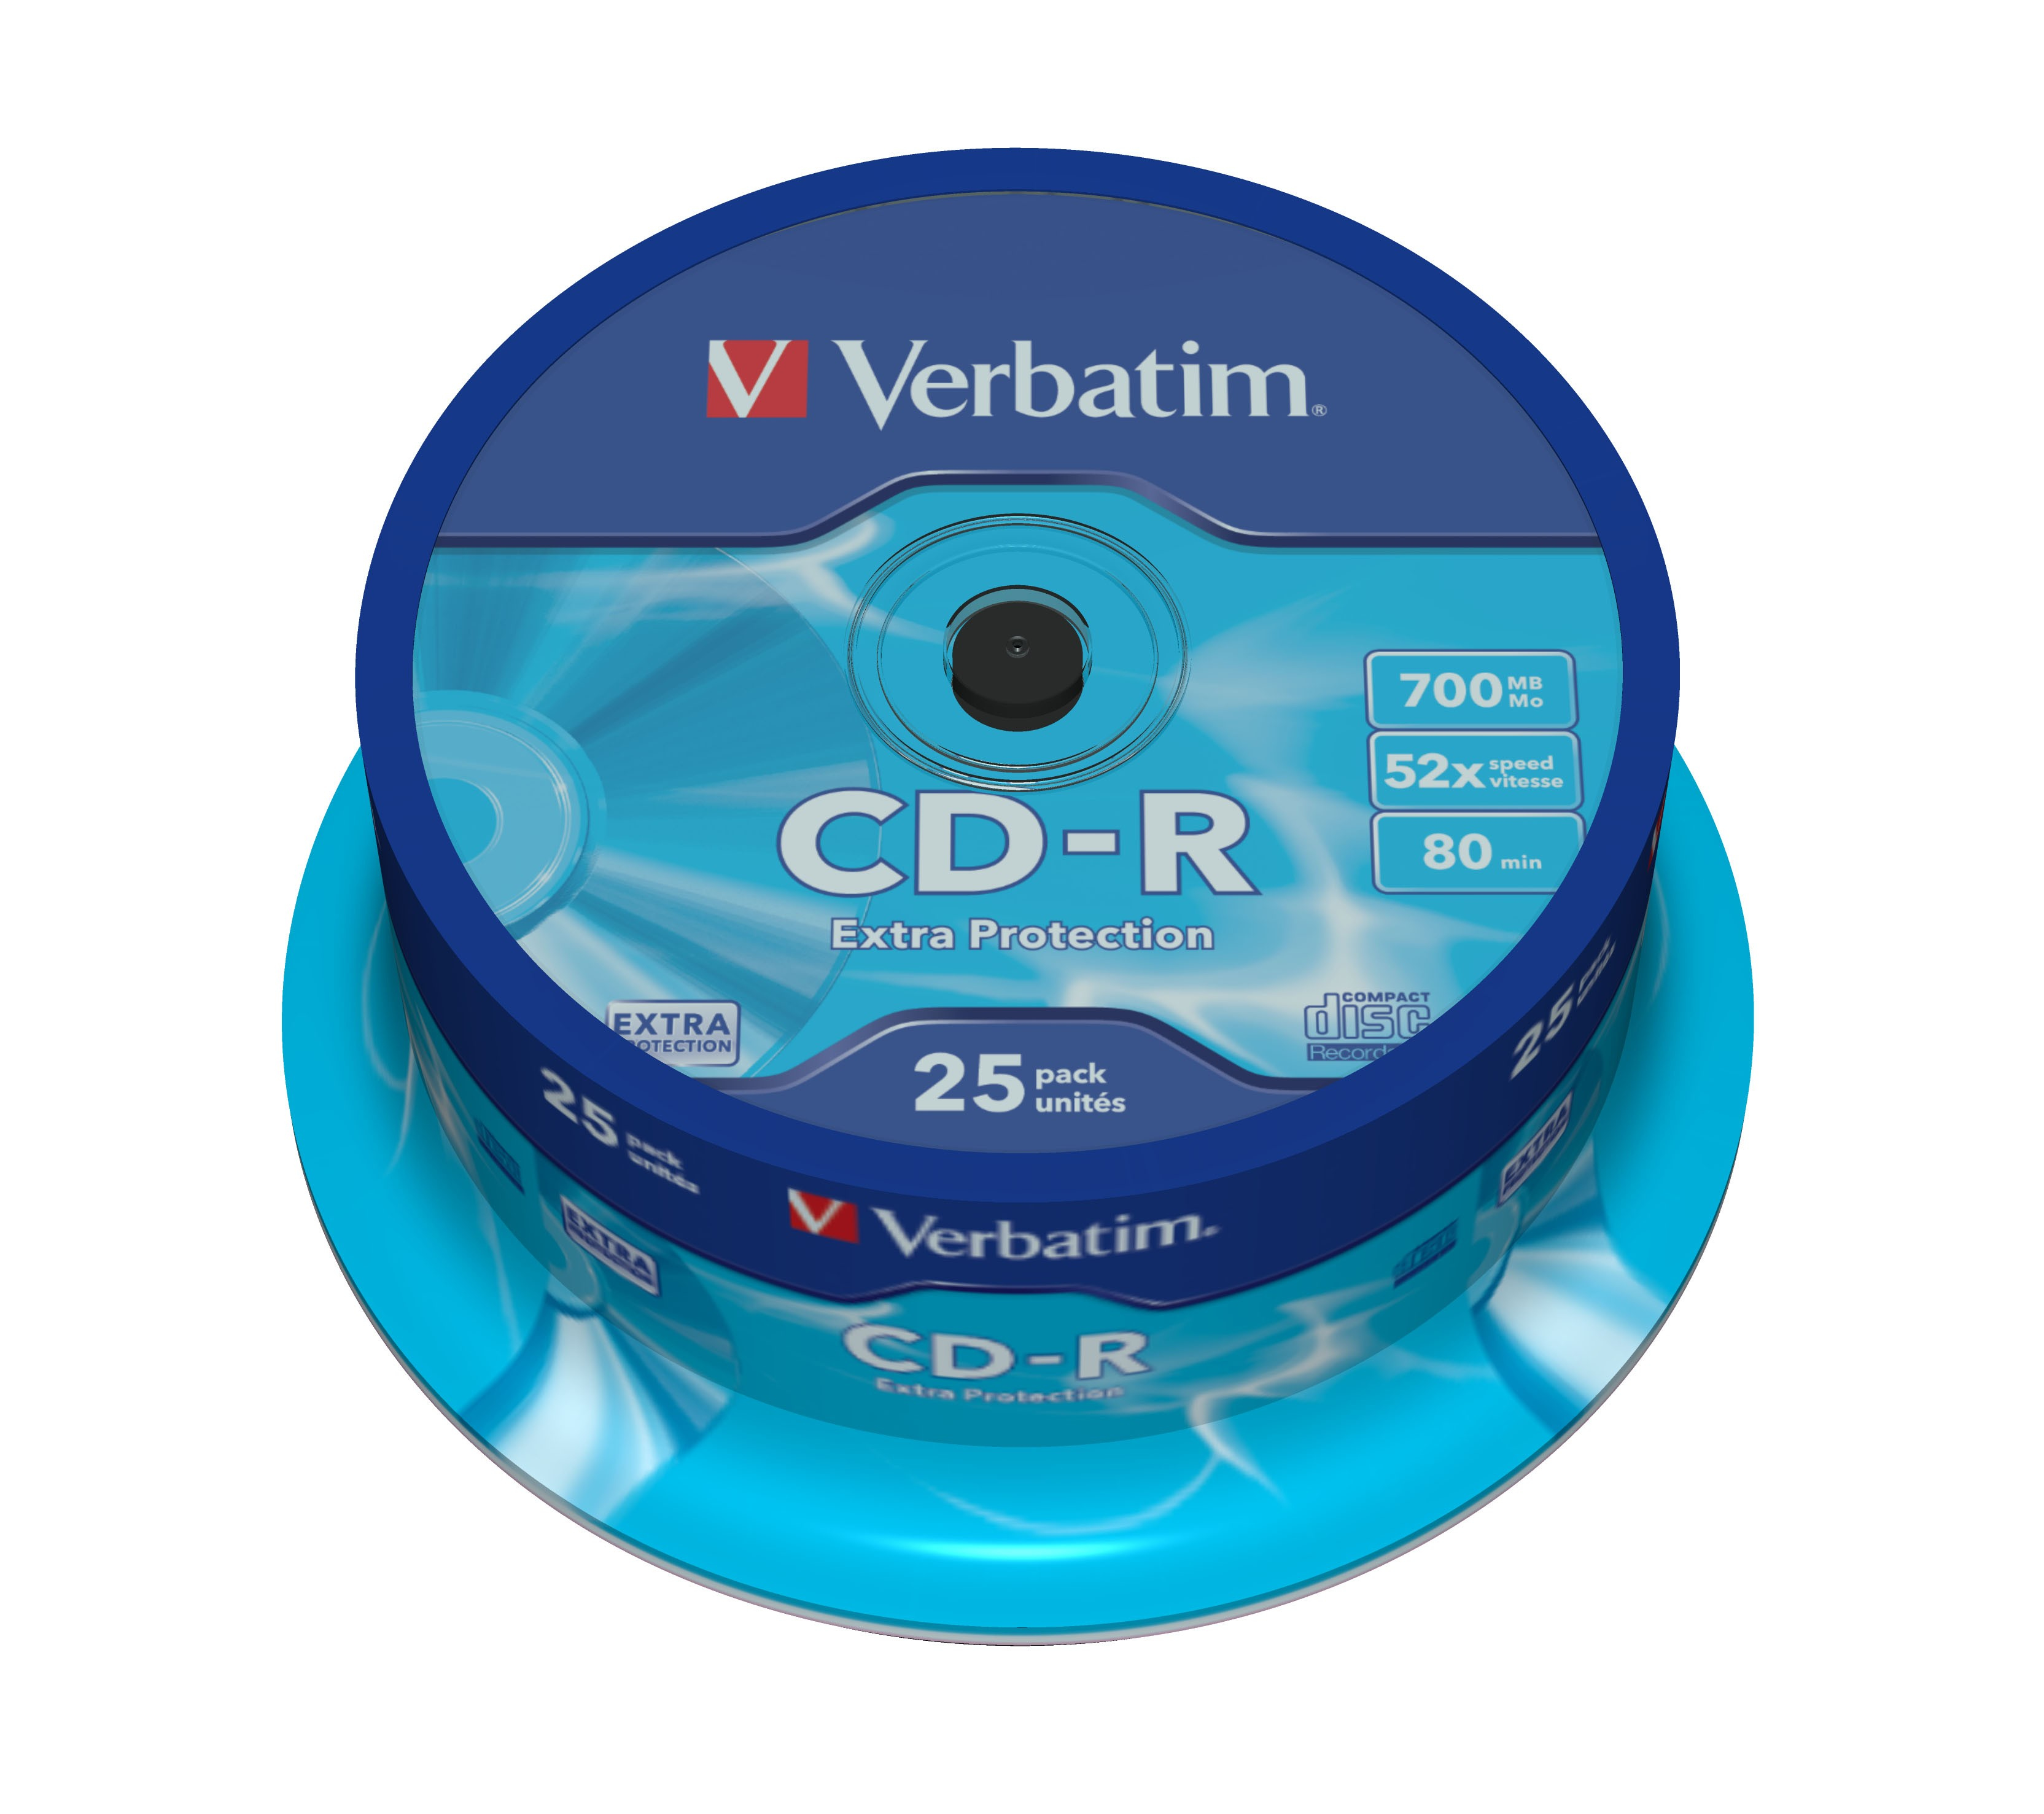 CD-R 700 MB, 52 speed, Datalife Extra Protection (25-spindel)